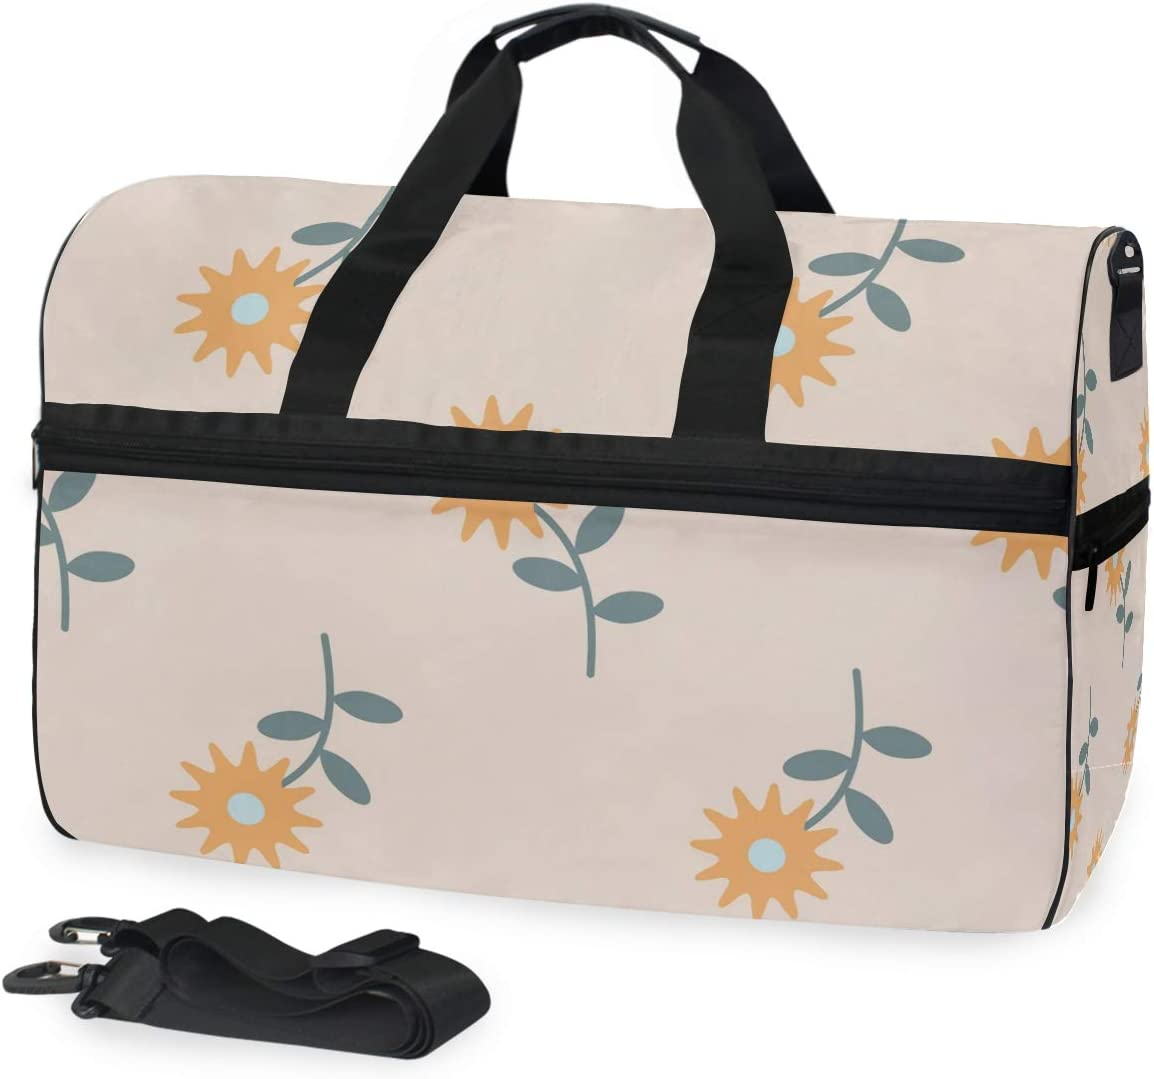 Chrysanthemum Floral Pattern Sports Gym Bag with Shoes Compartment Travel Duffel Bag for Men Women